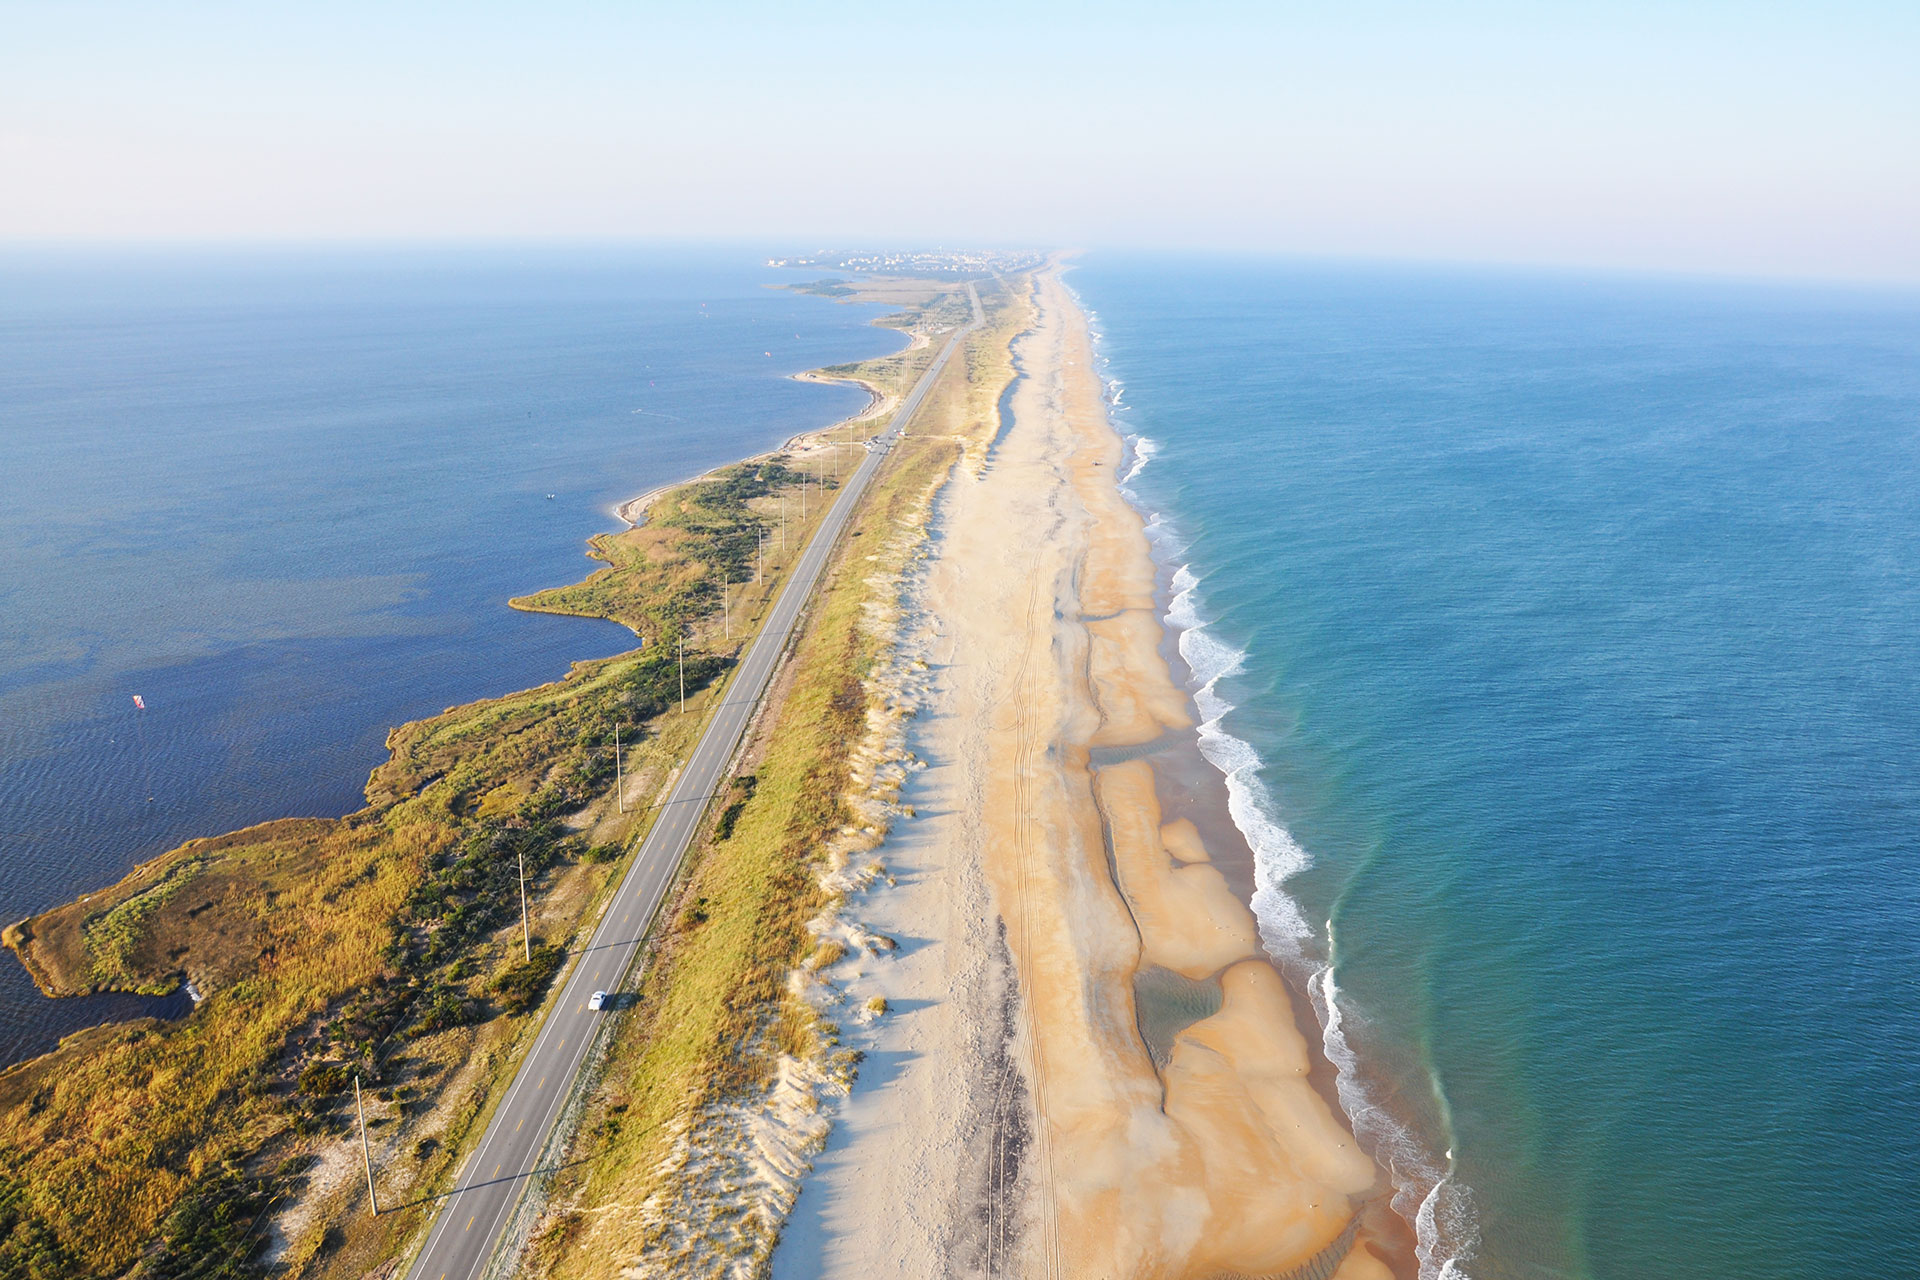 Aerial View of the Outer Banks